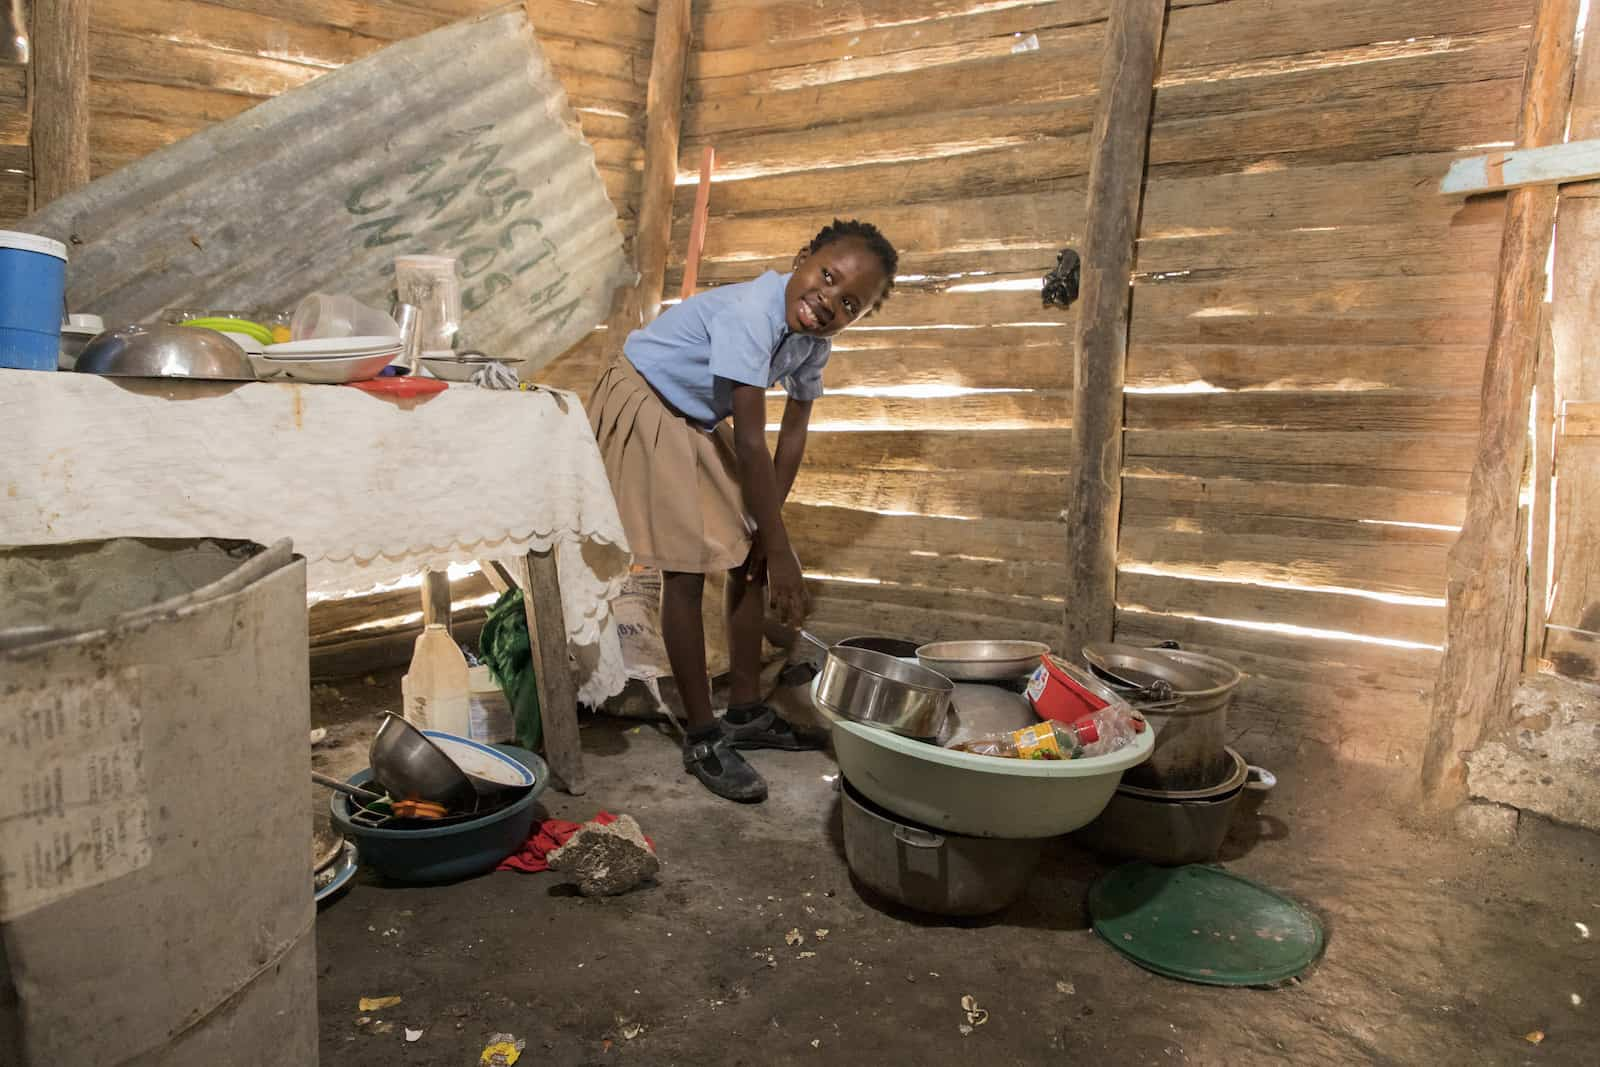 A girl in a blue shirt and tan skirt leans over pots and pans on a dirt floor. There is a table to one side. The walls are made of wood slats with holes in them.